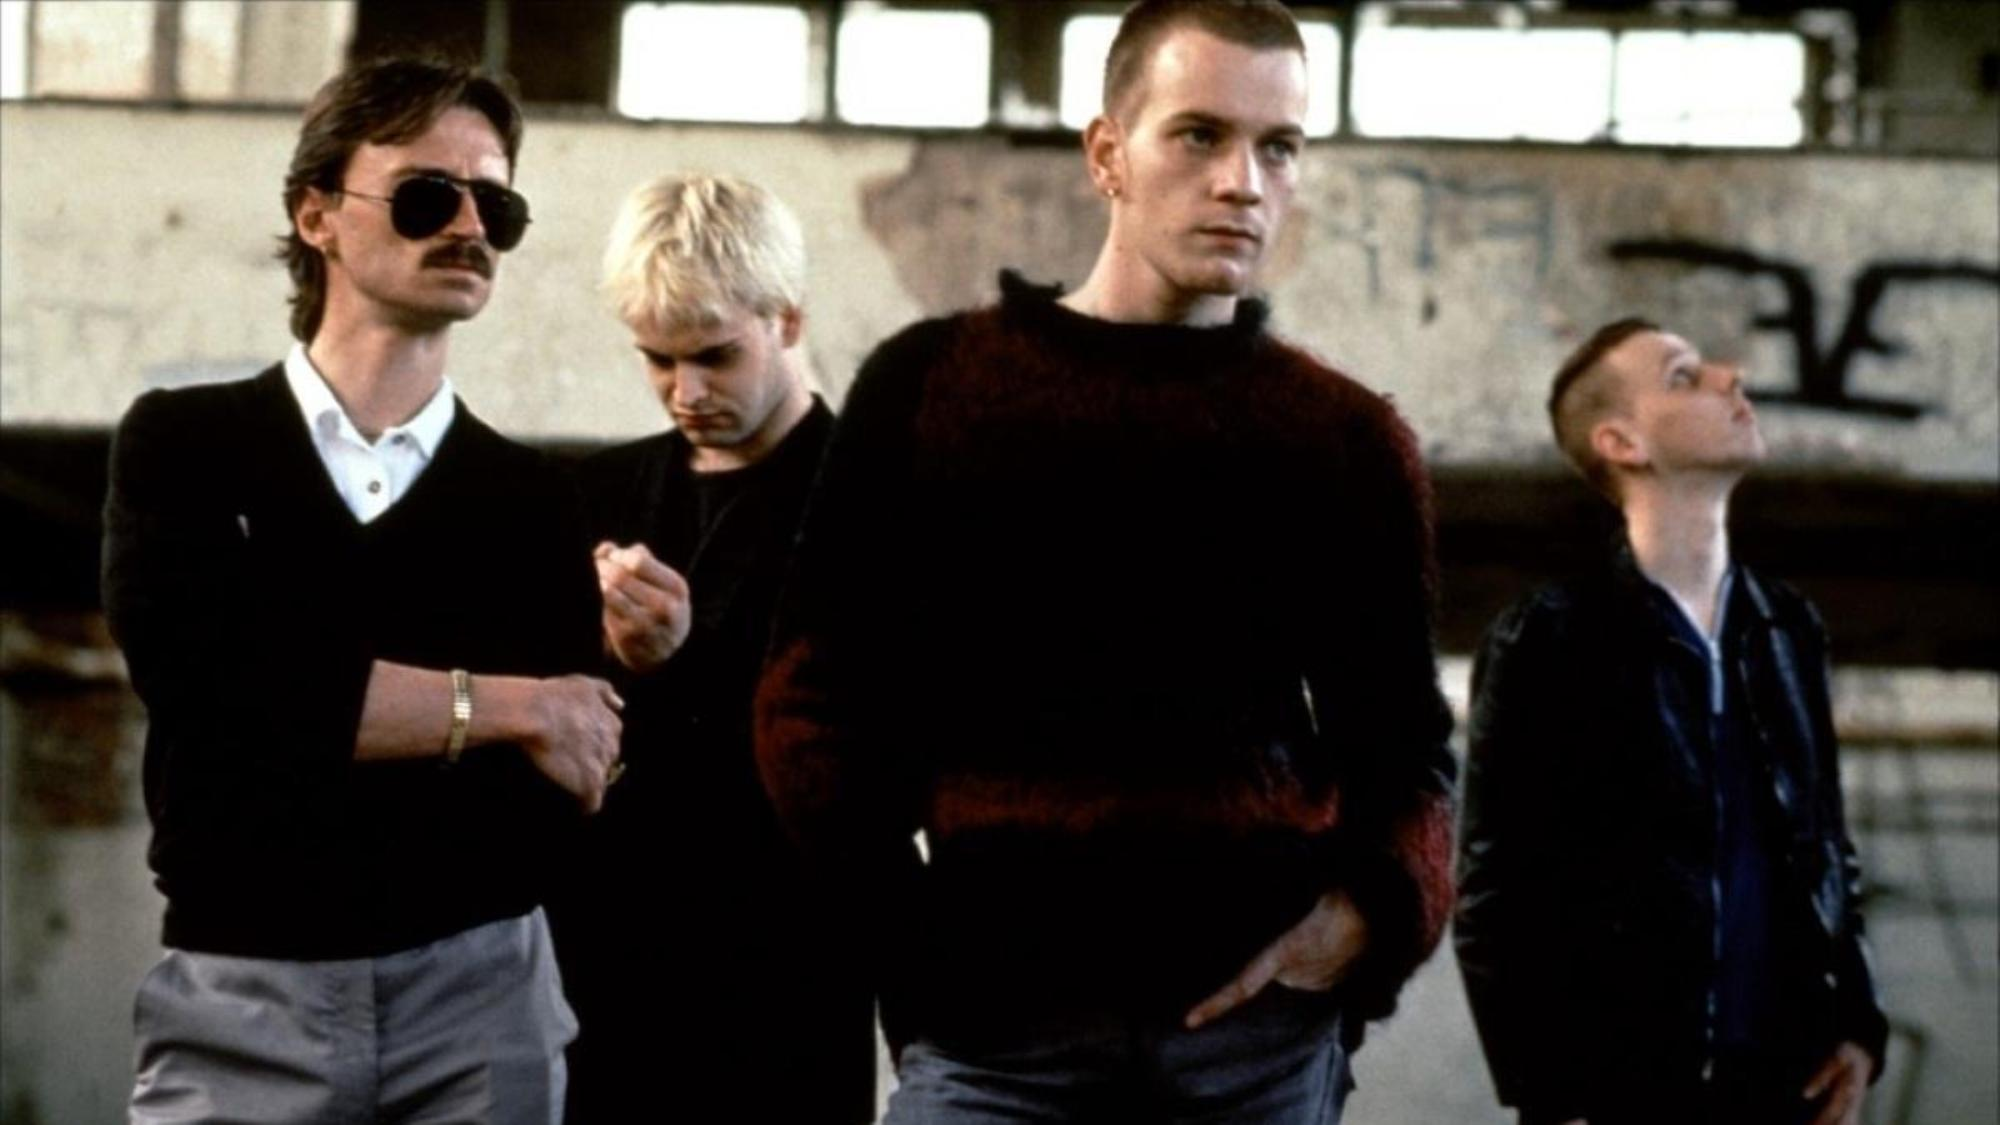 get-ready-for-a-trainspotting-sequel-1441638121.jpg